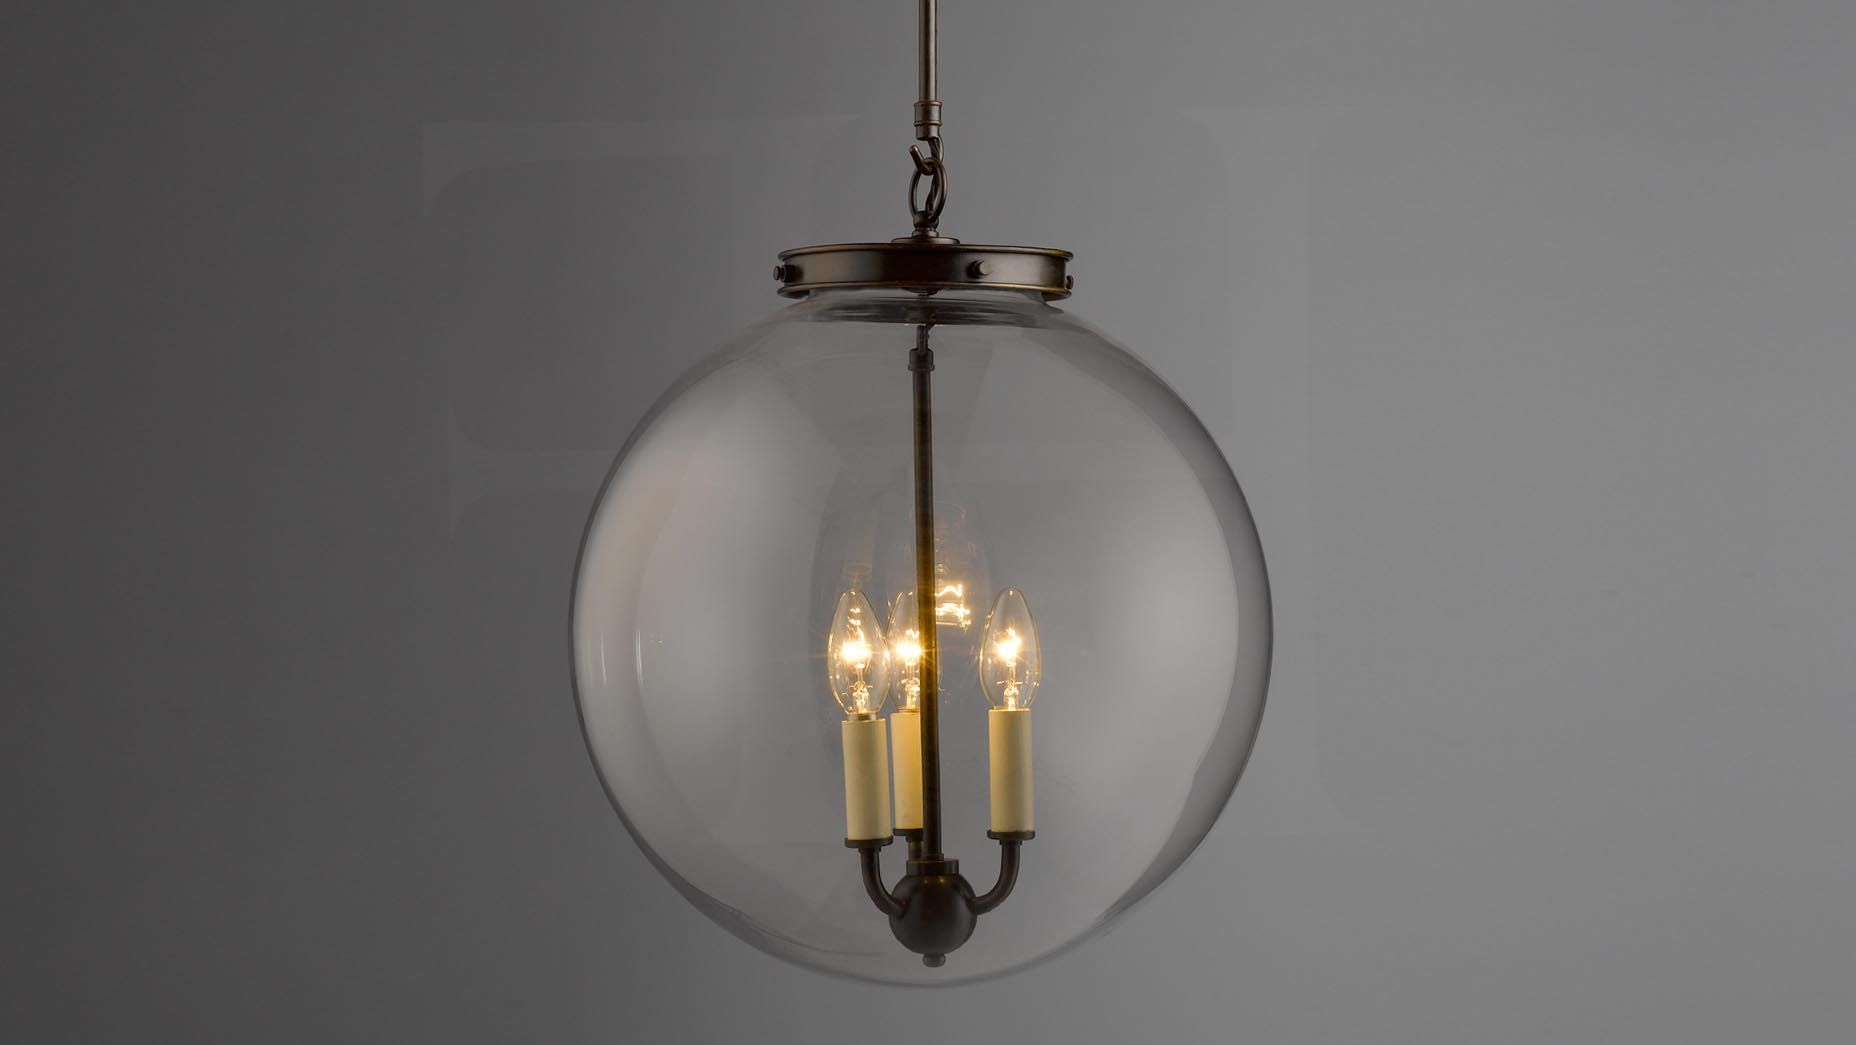 Replacement Glass Globe For Outdoor Chandelier Glass Globe Chandelier Outdoor Chandelier Edison Light Bulbs